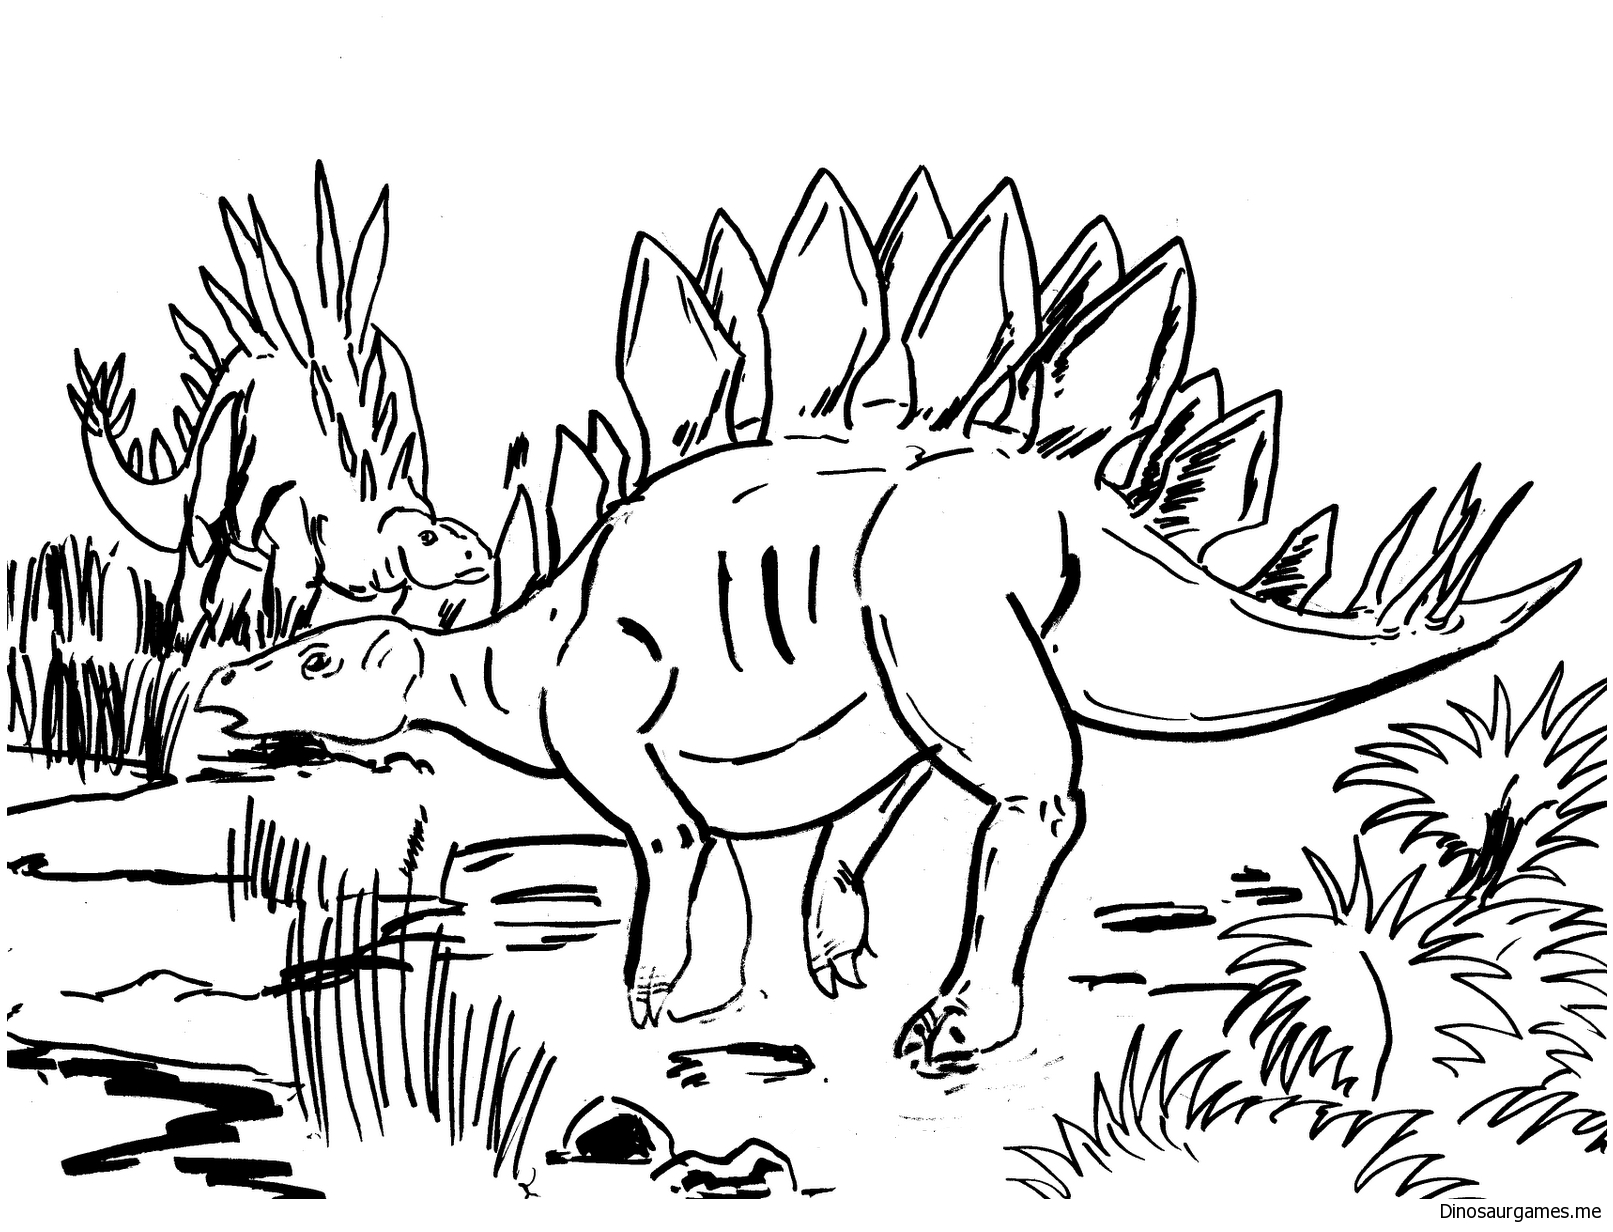 stegosaurus pictures to color stegosaurus coloring pages for kids dinosaur coloring pictures stegosaurus color to